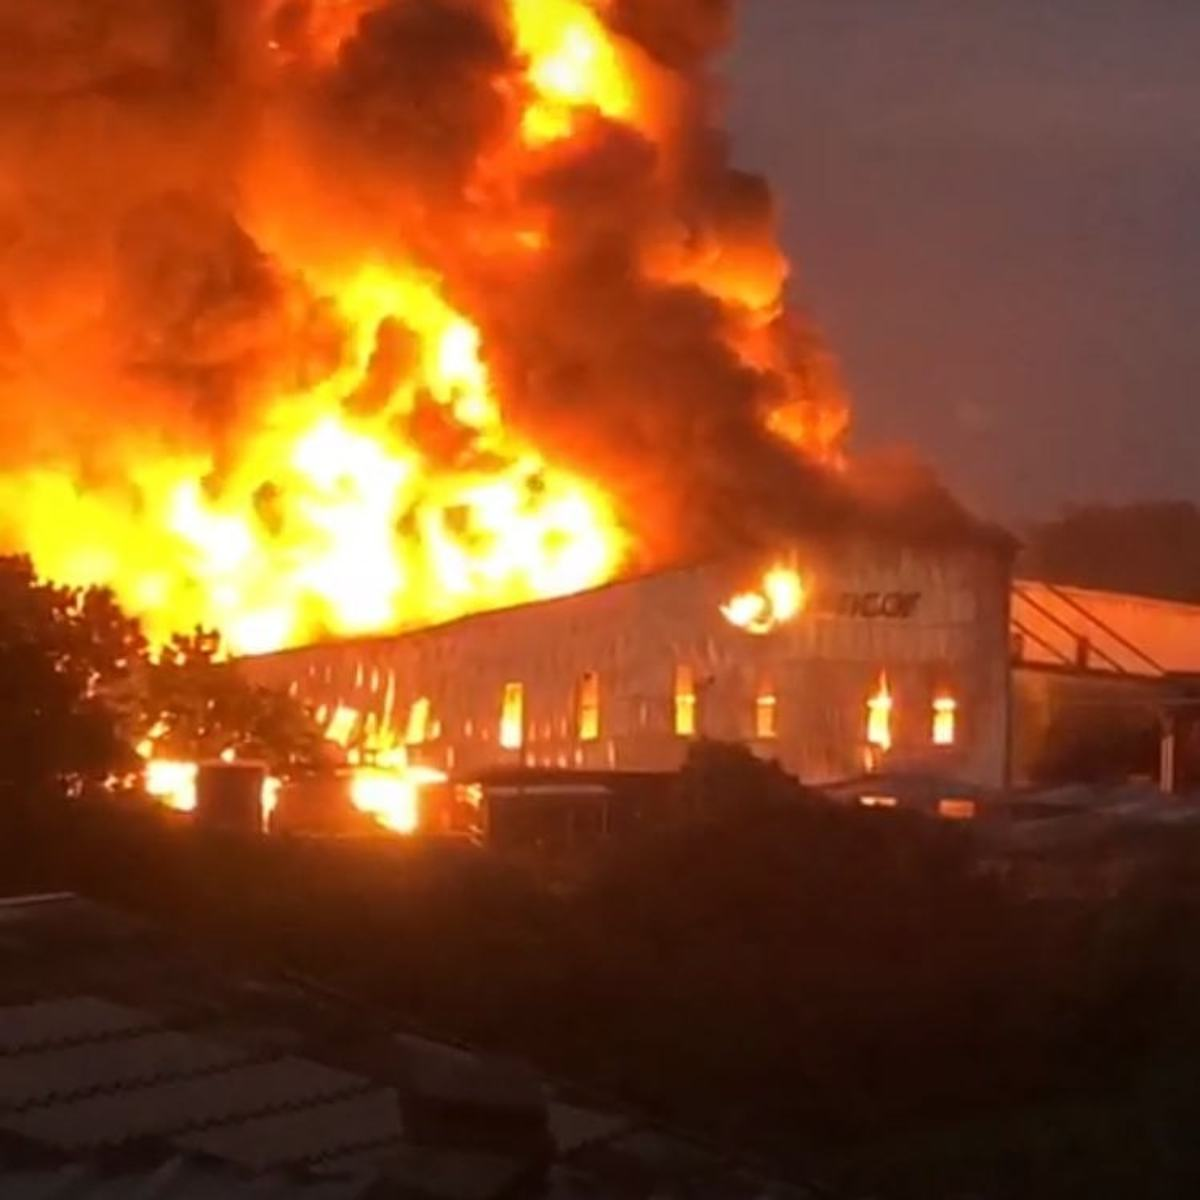 A food packaging company in Kwazulu Natal burned down to the ground